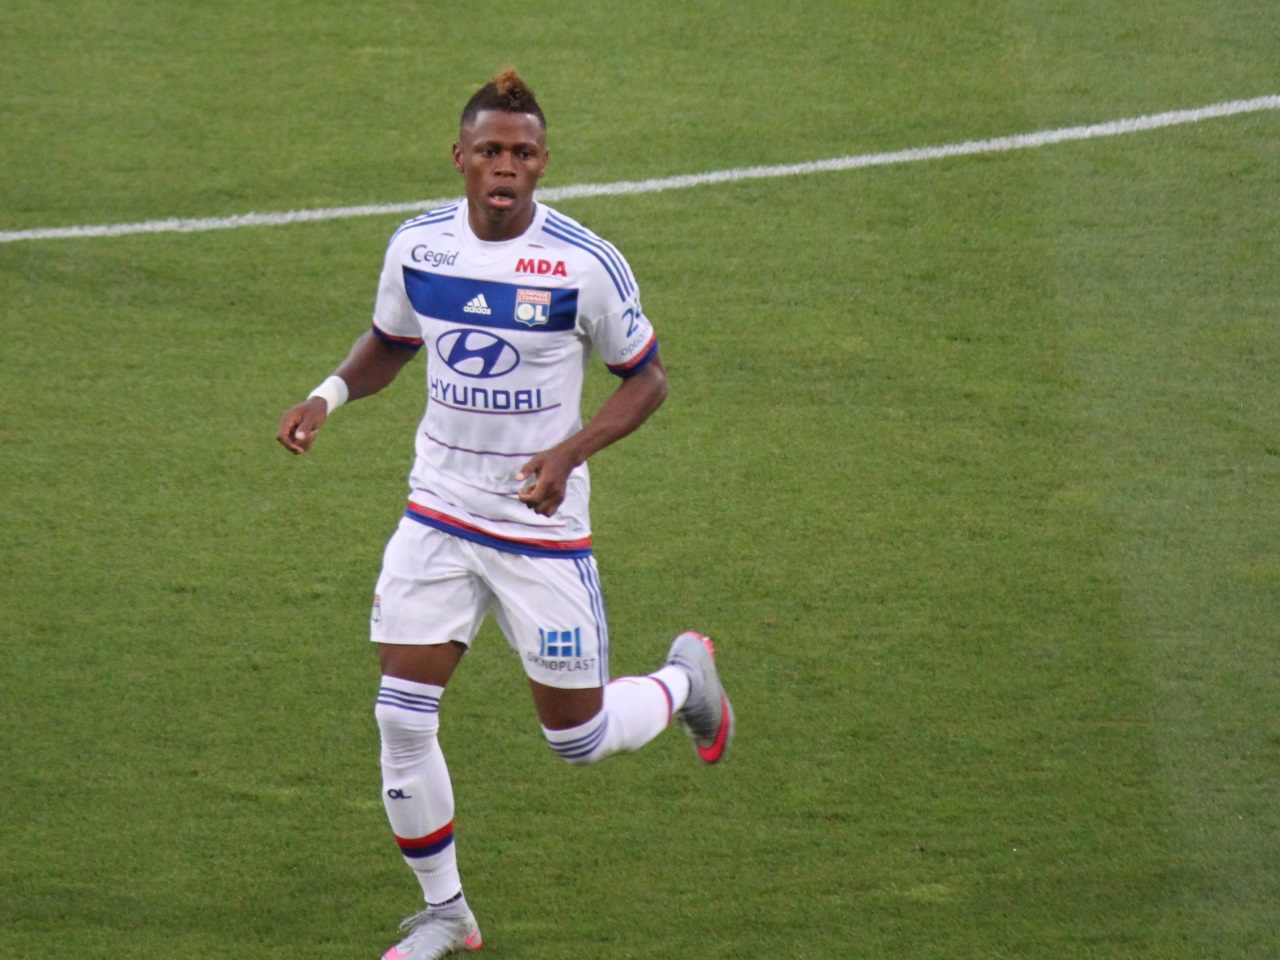 Maillot THIRD OM Clinton NJIE